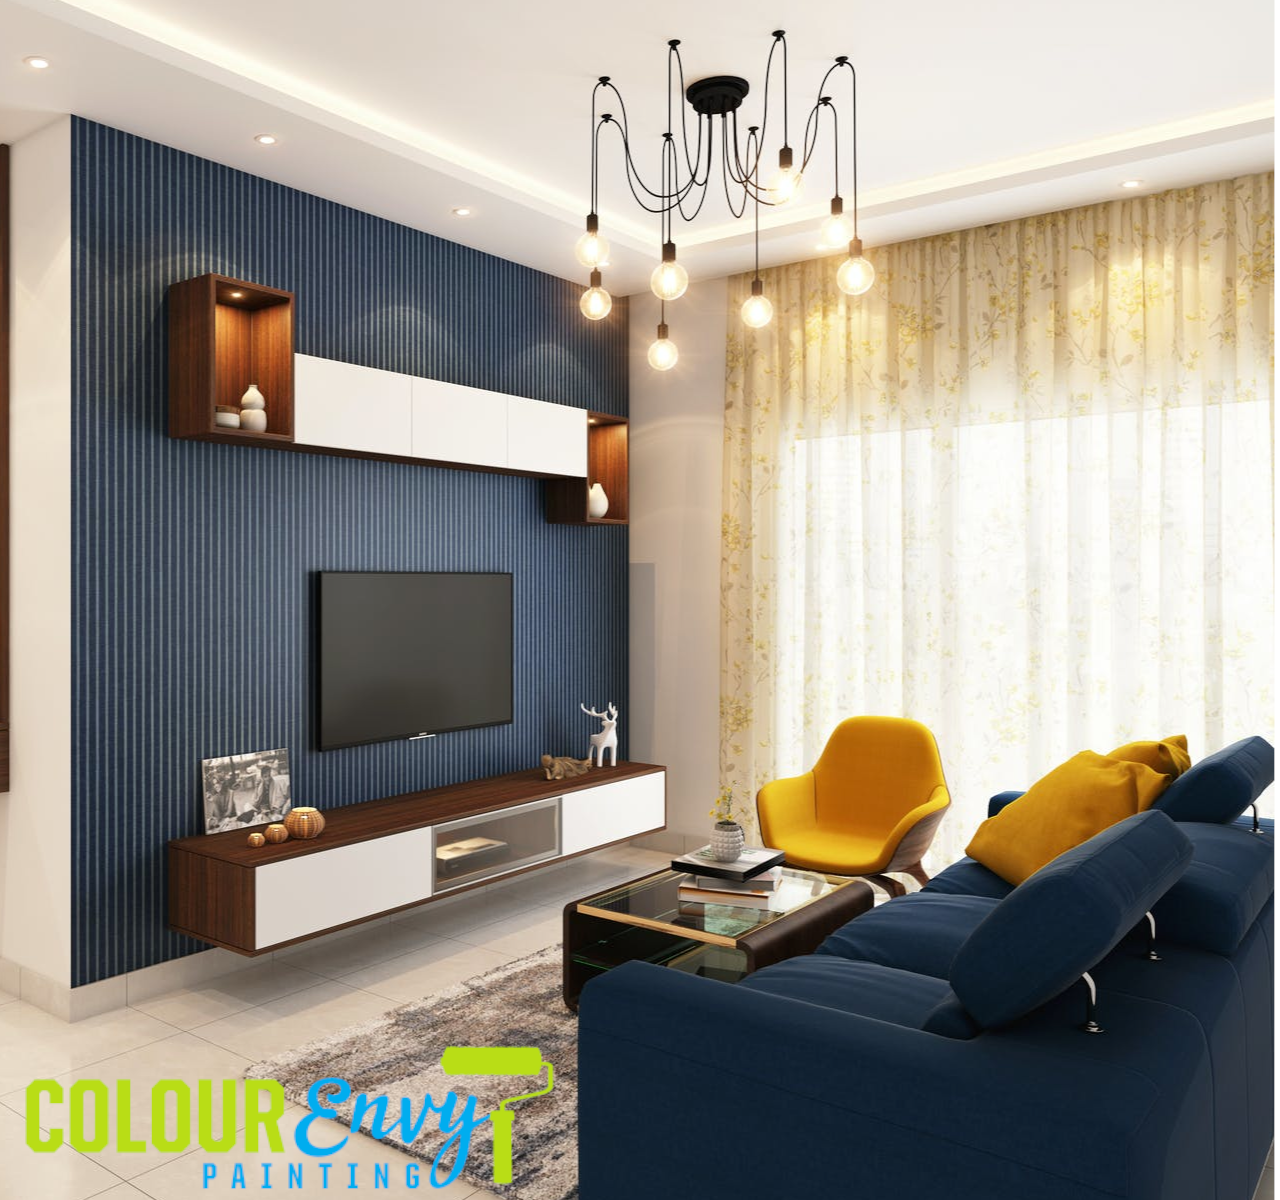 https://mk0mosaichomesep04mv.kinstacdn.com/wp-content/uploads/2021/05/Colour-Envy-Painting-Brand-Page-With-Logo.png